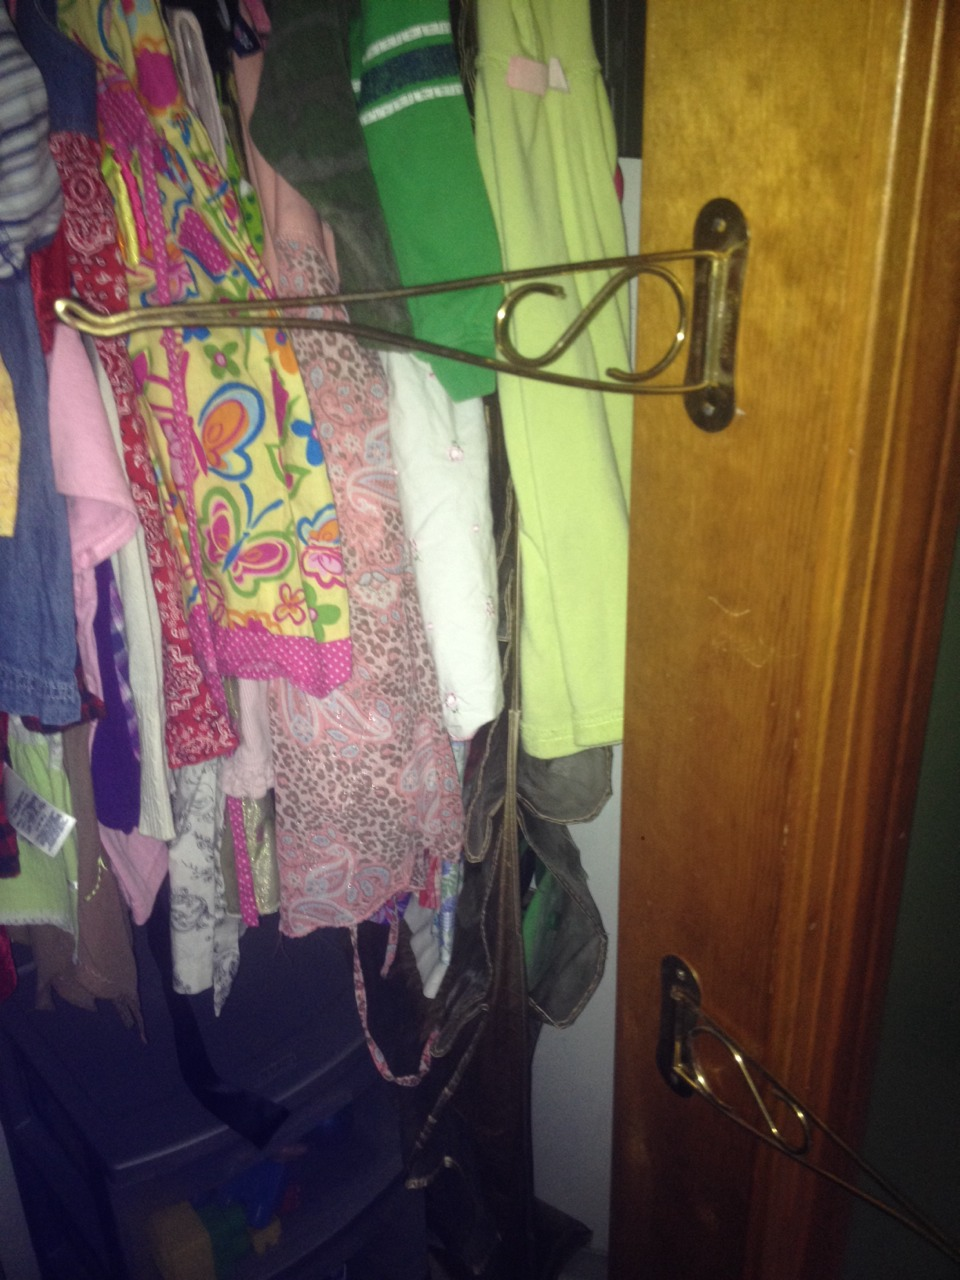 So as I do laundry everything gets hung on these wich frees up my hands to move the clothes on the rack around so everything goes where it belongs and I'm not dropping clothes repeatedly lol👍